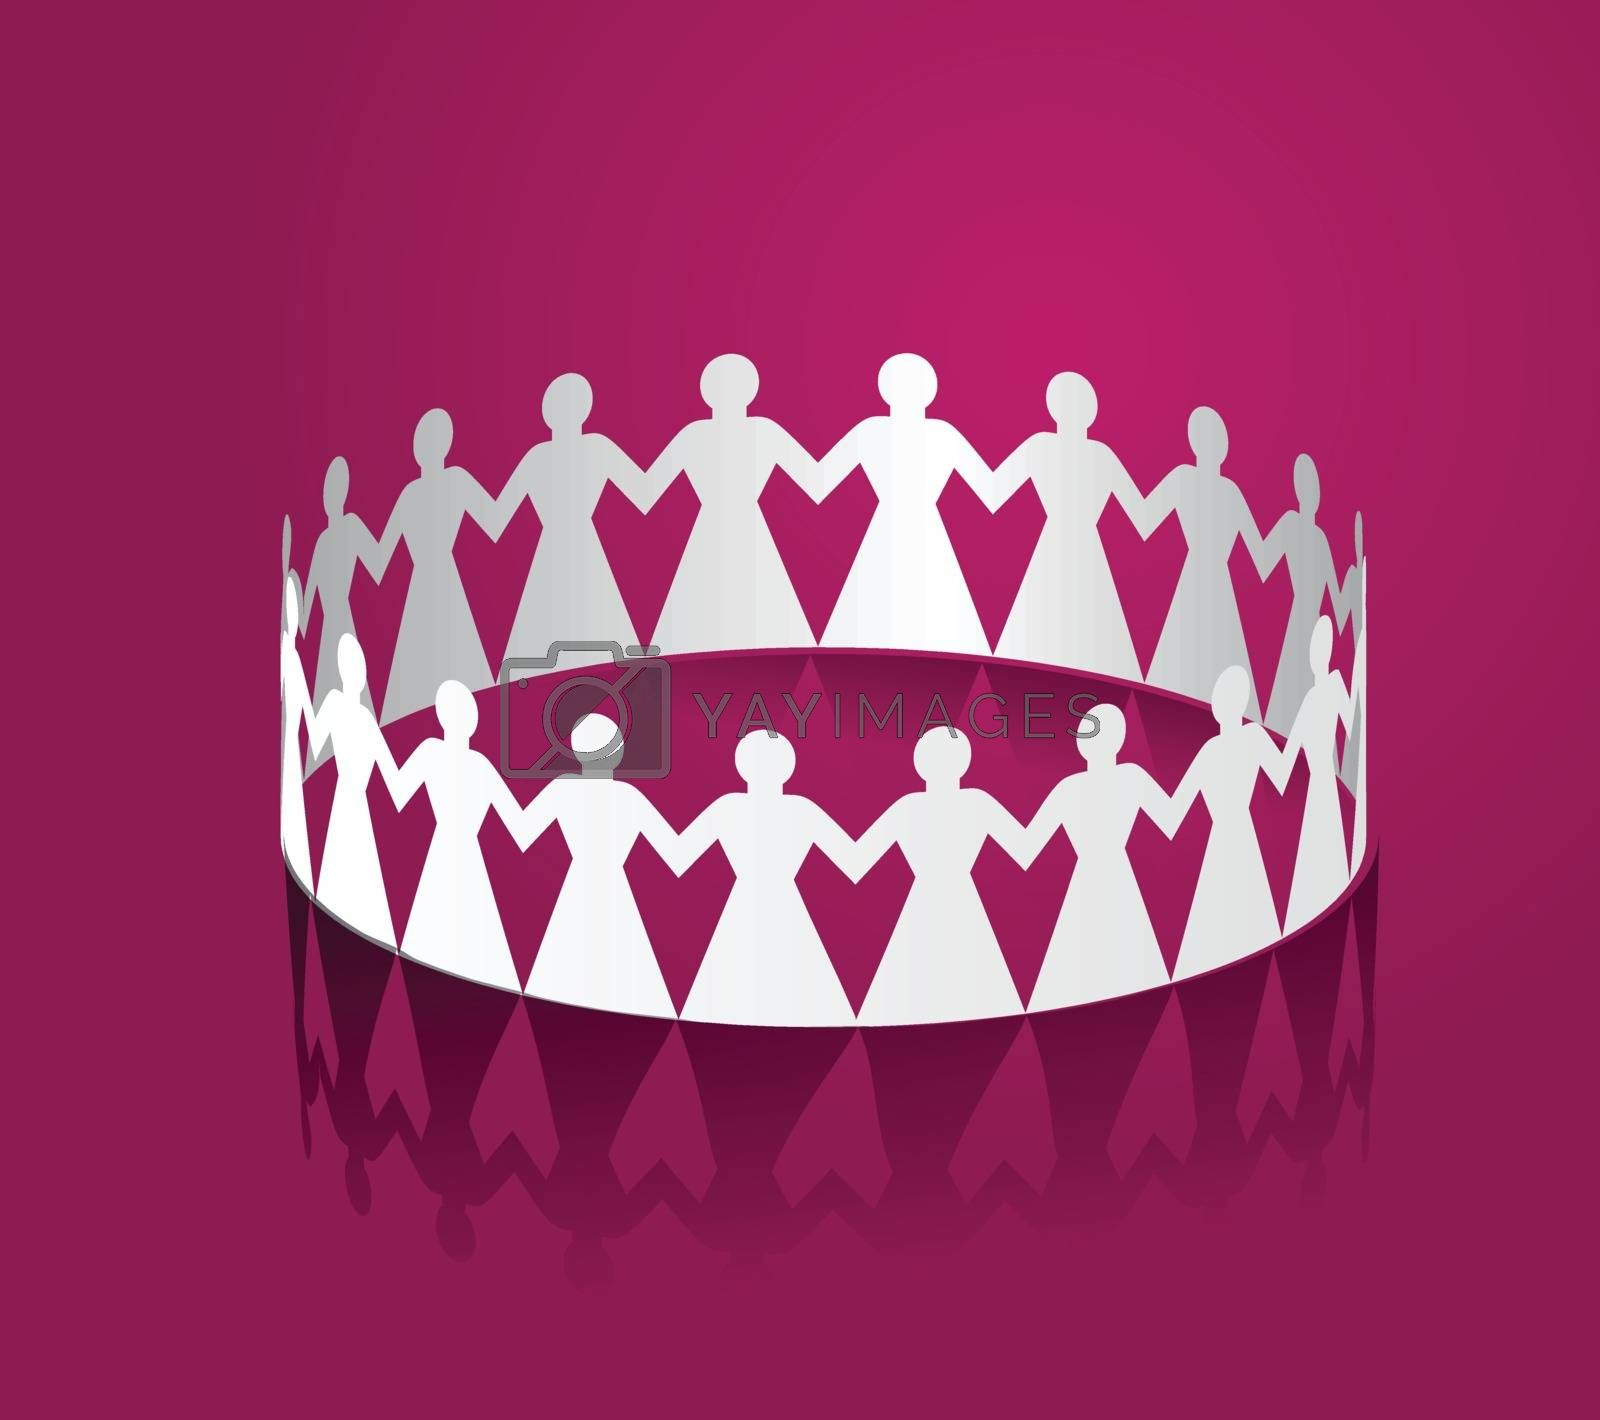 Paper women holding hands in the shape of a circle. Vector illustration